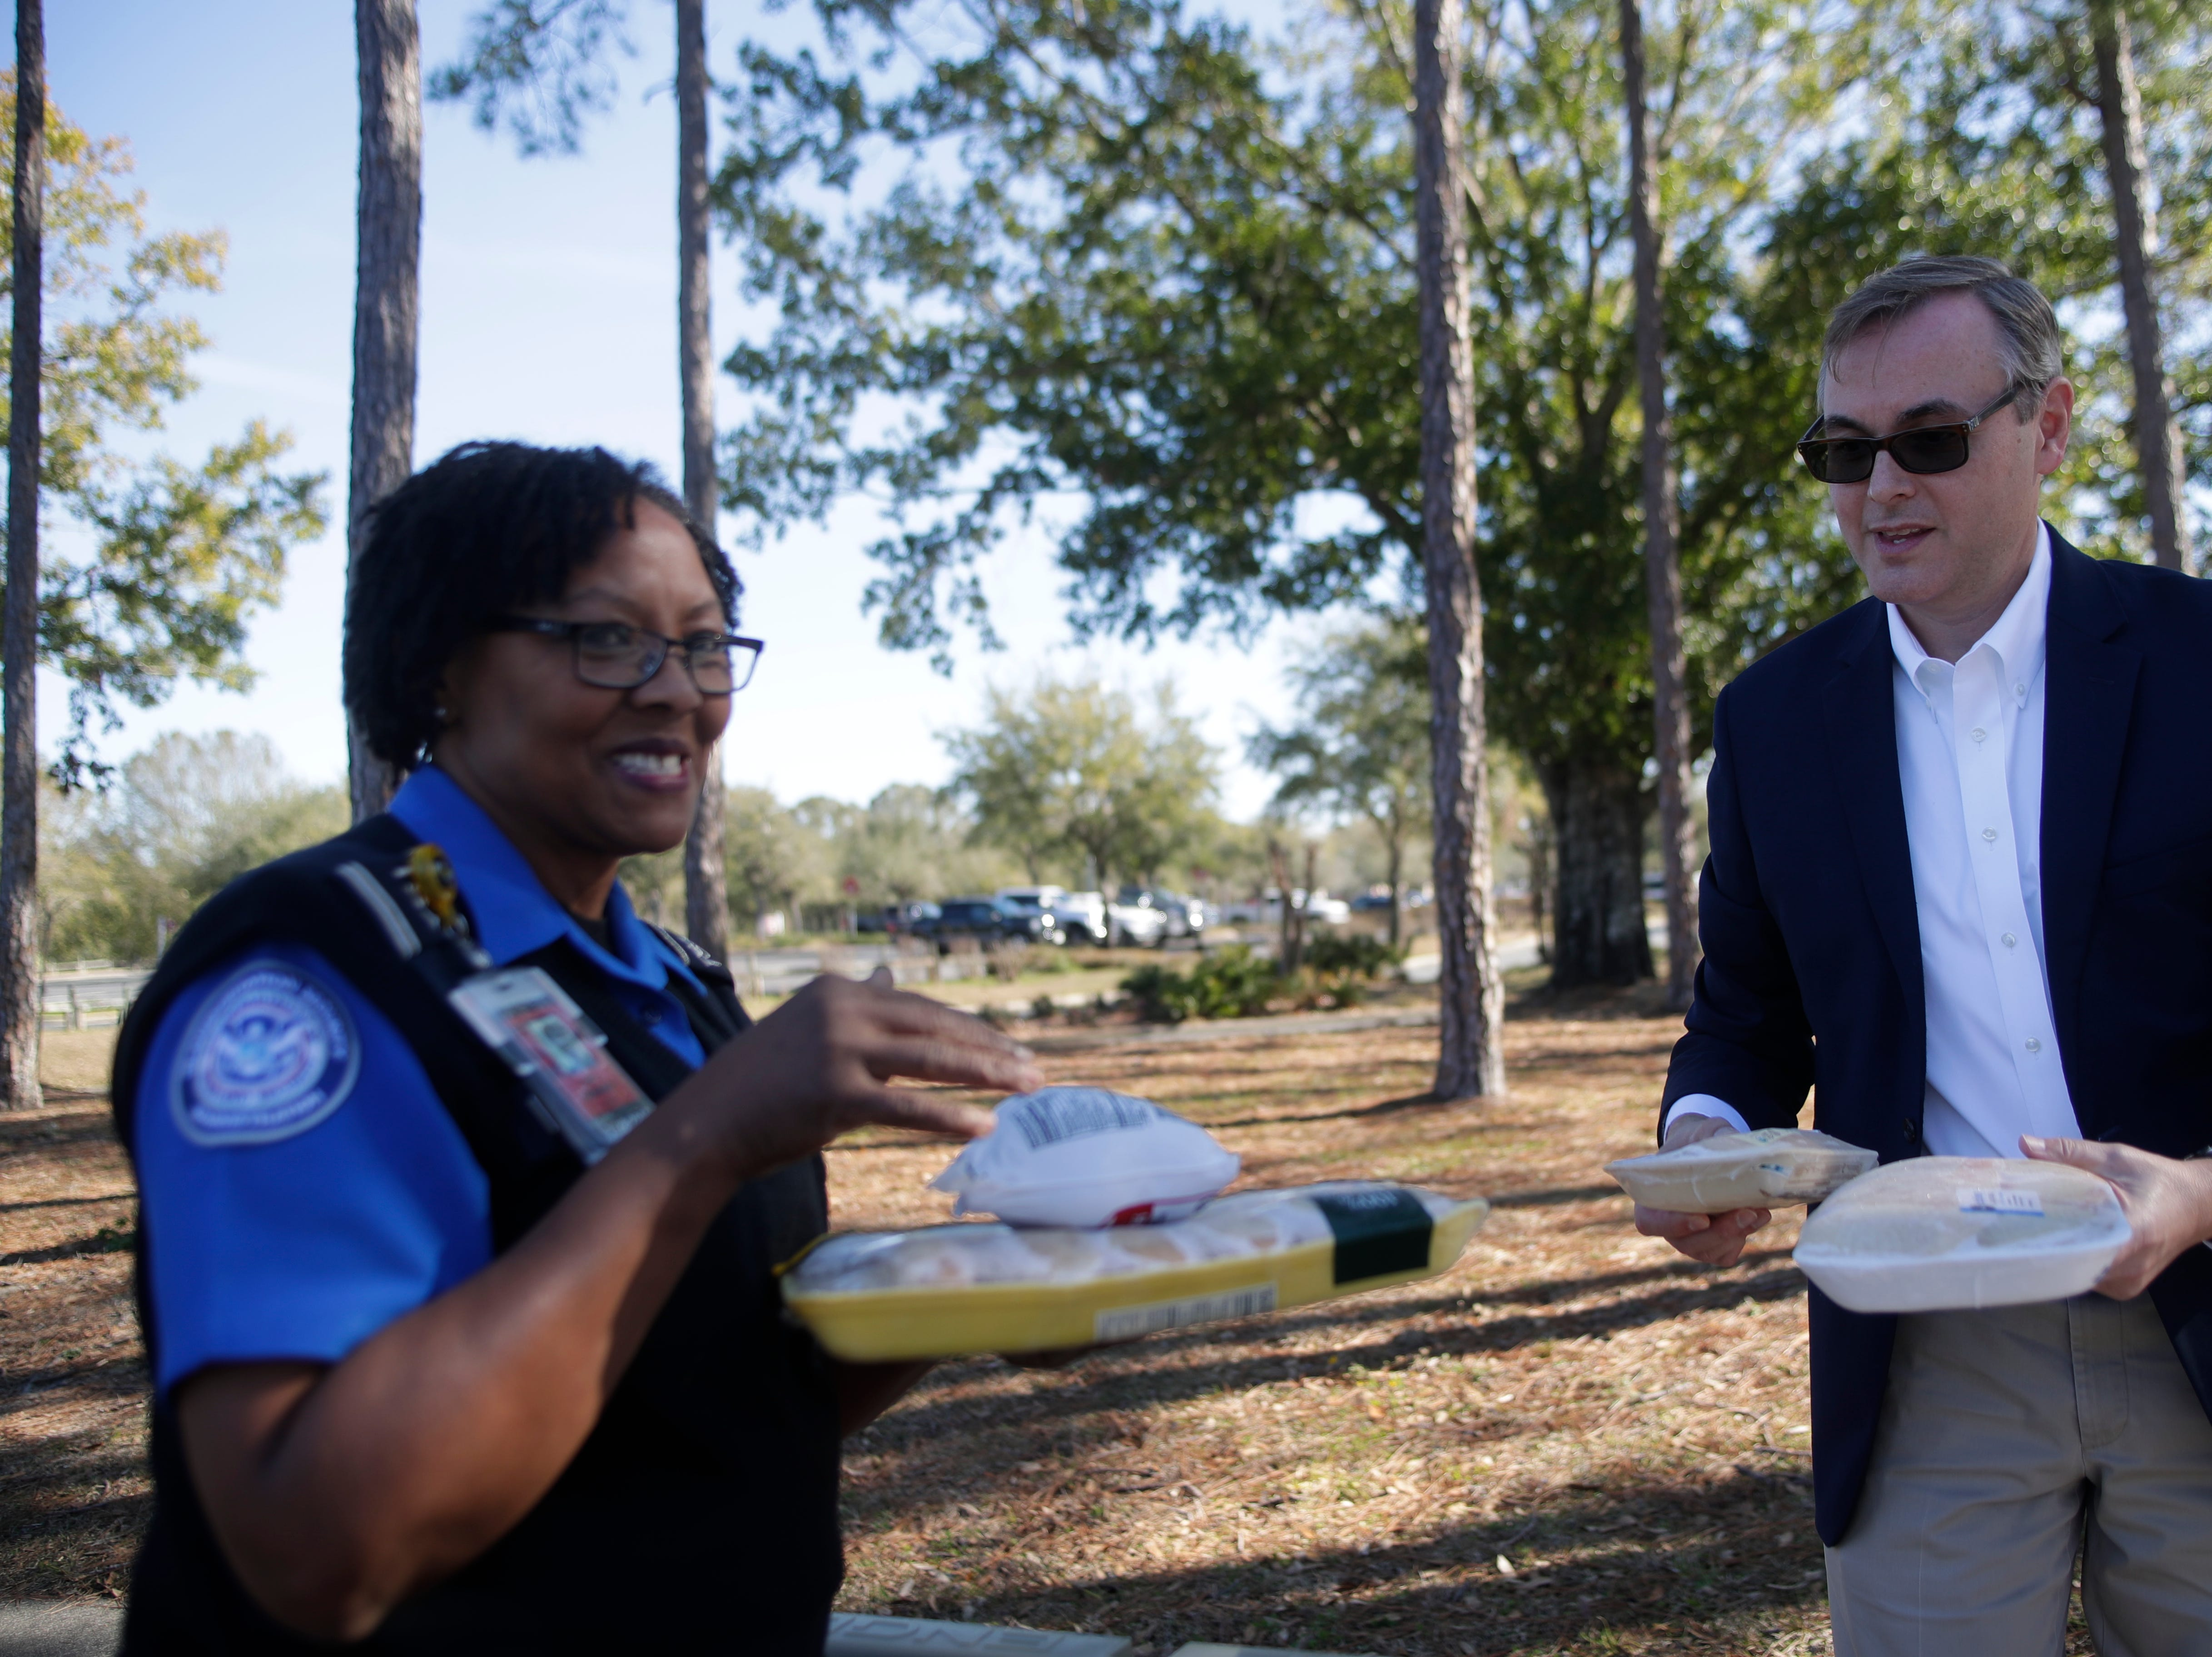 Second Harvest of the Big Bend CEO Rick Minor hands out poultry and other food to Transportation Security Administration employee Mae Speights at the Tallahassee International Airport Thursday, Jan. 17, 2019.